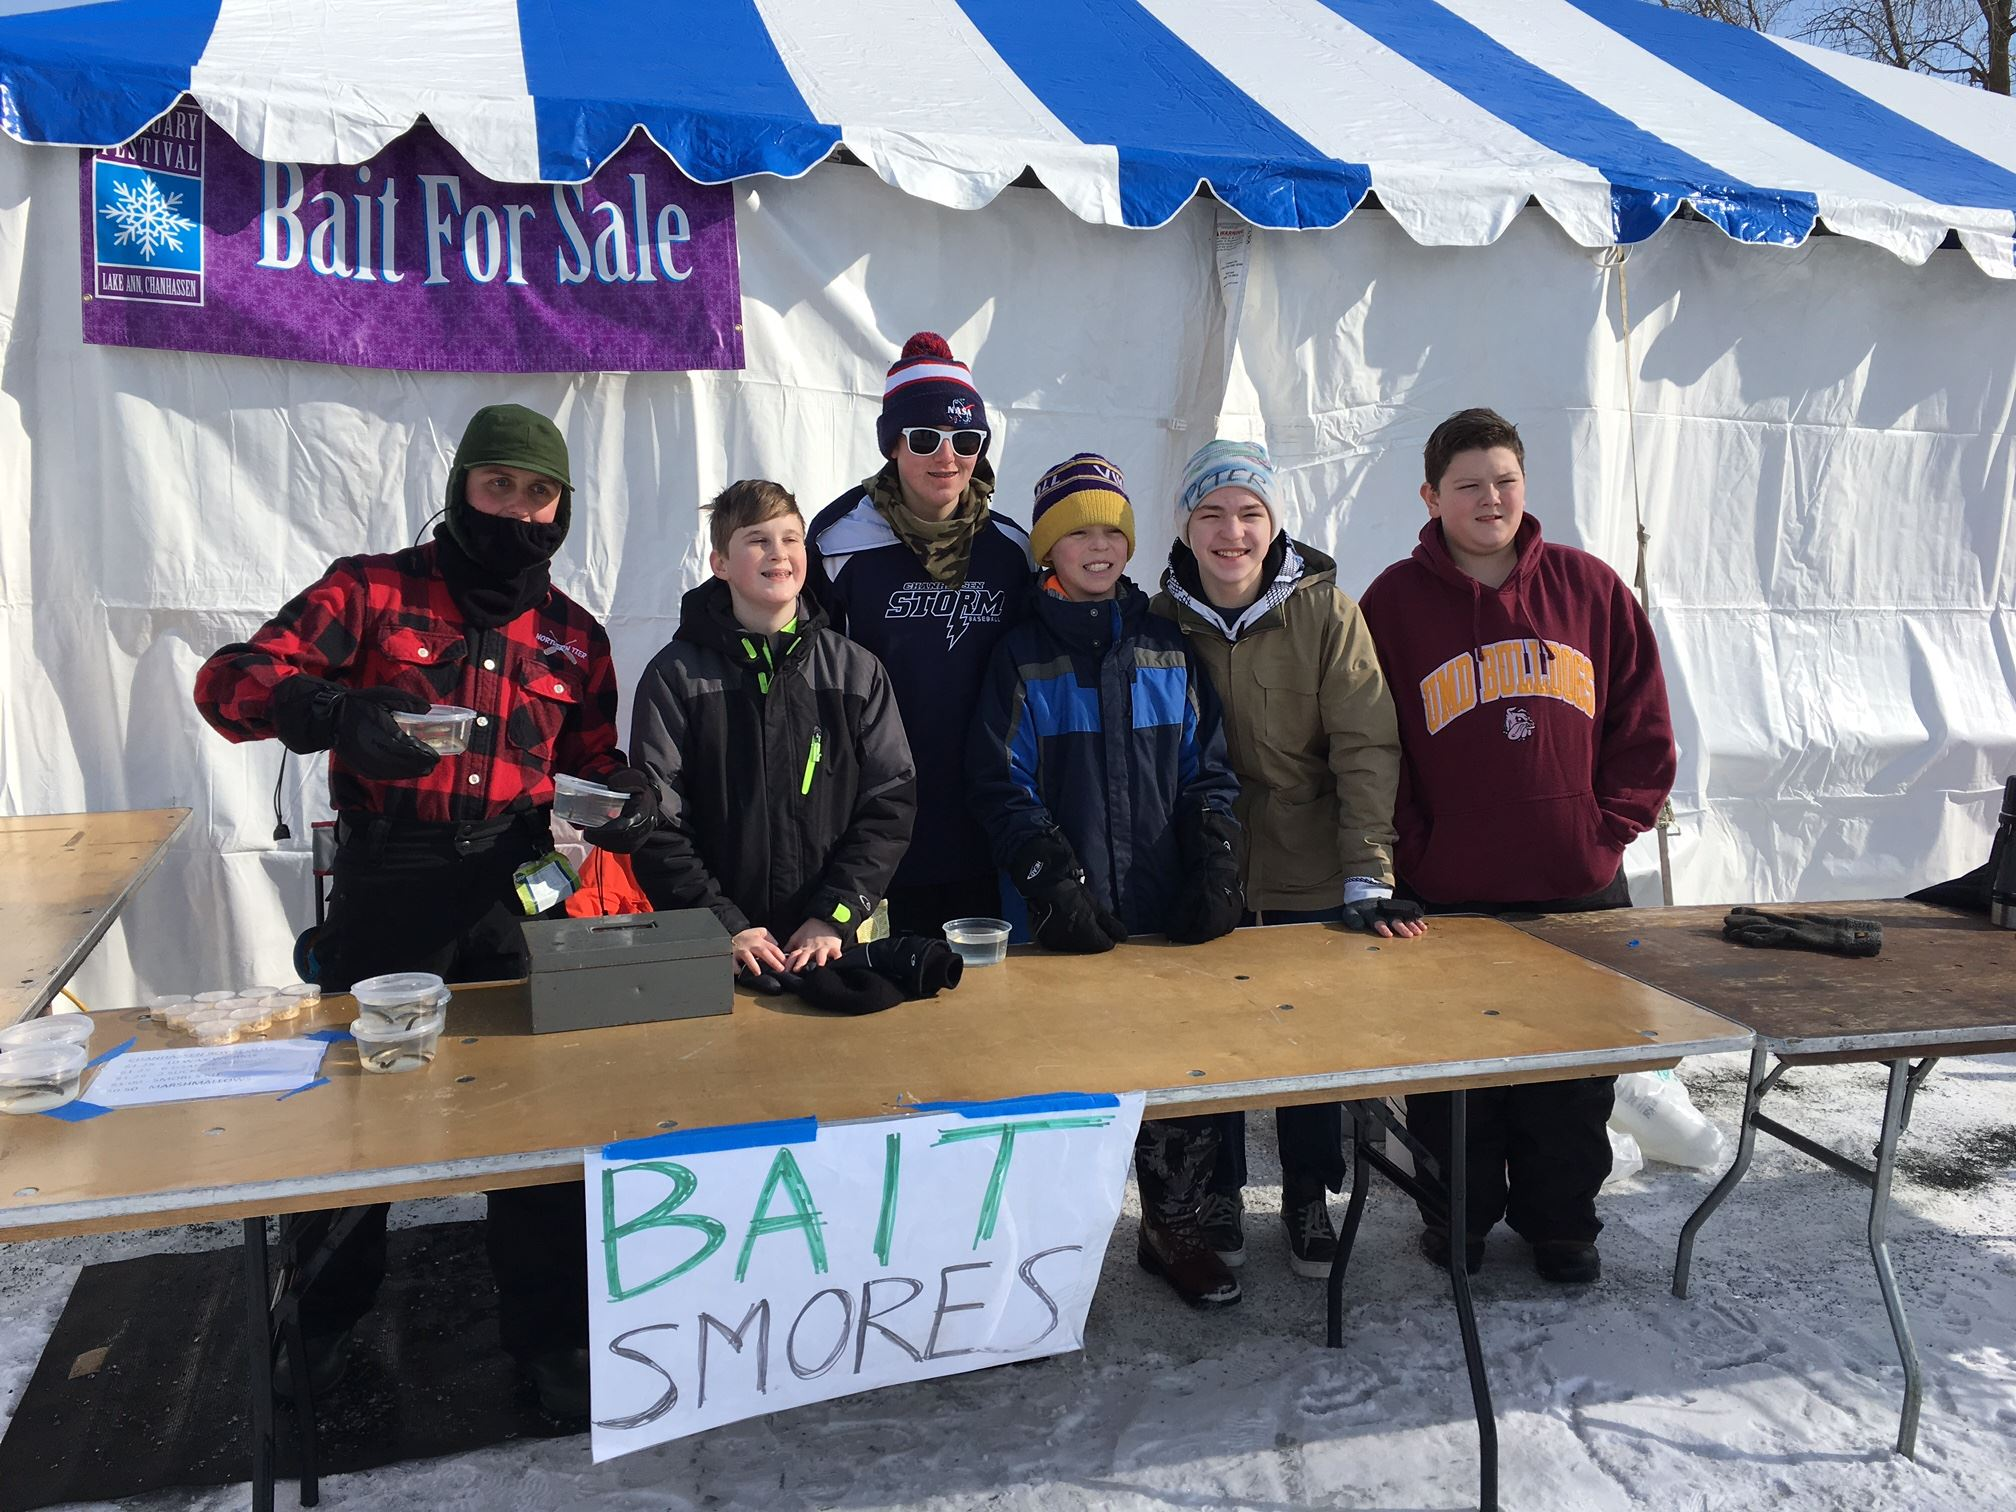 Boy Scouts at February Festival selling bait and s'mores